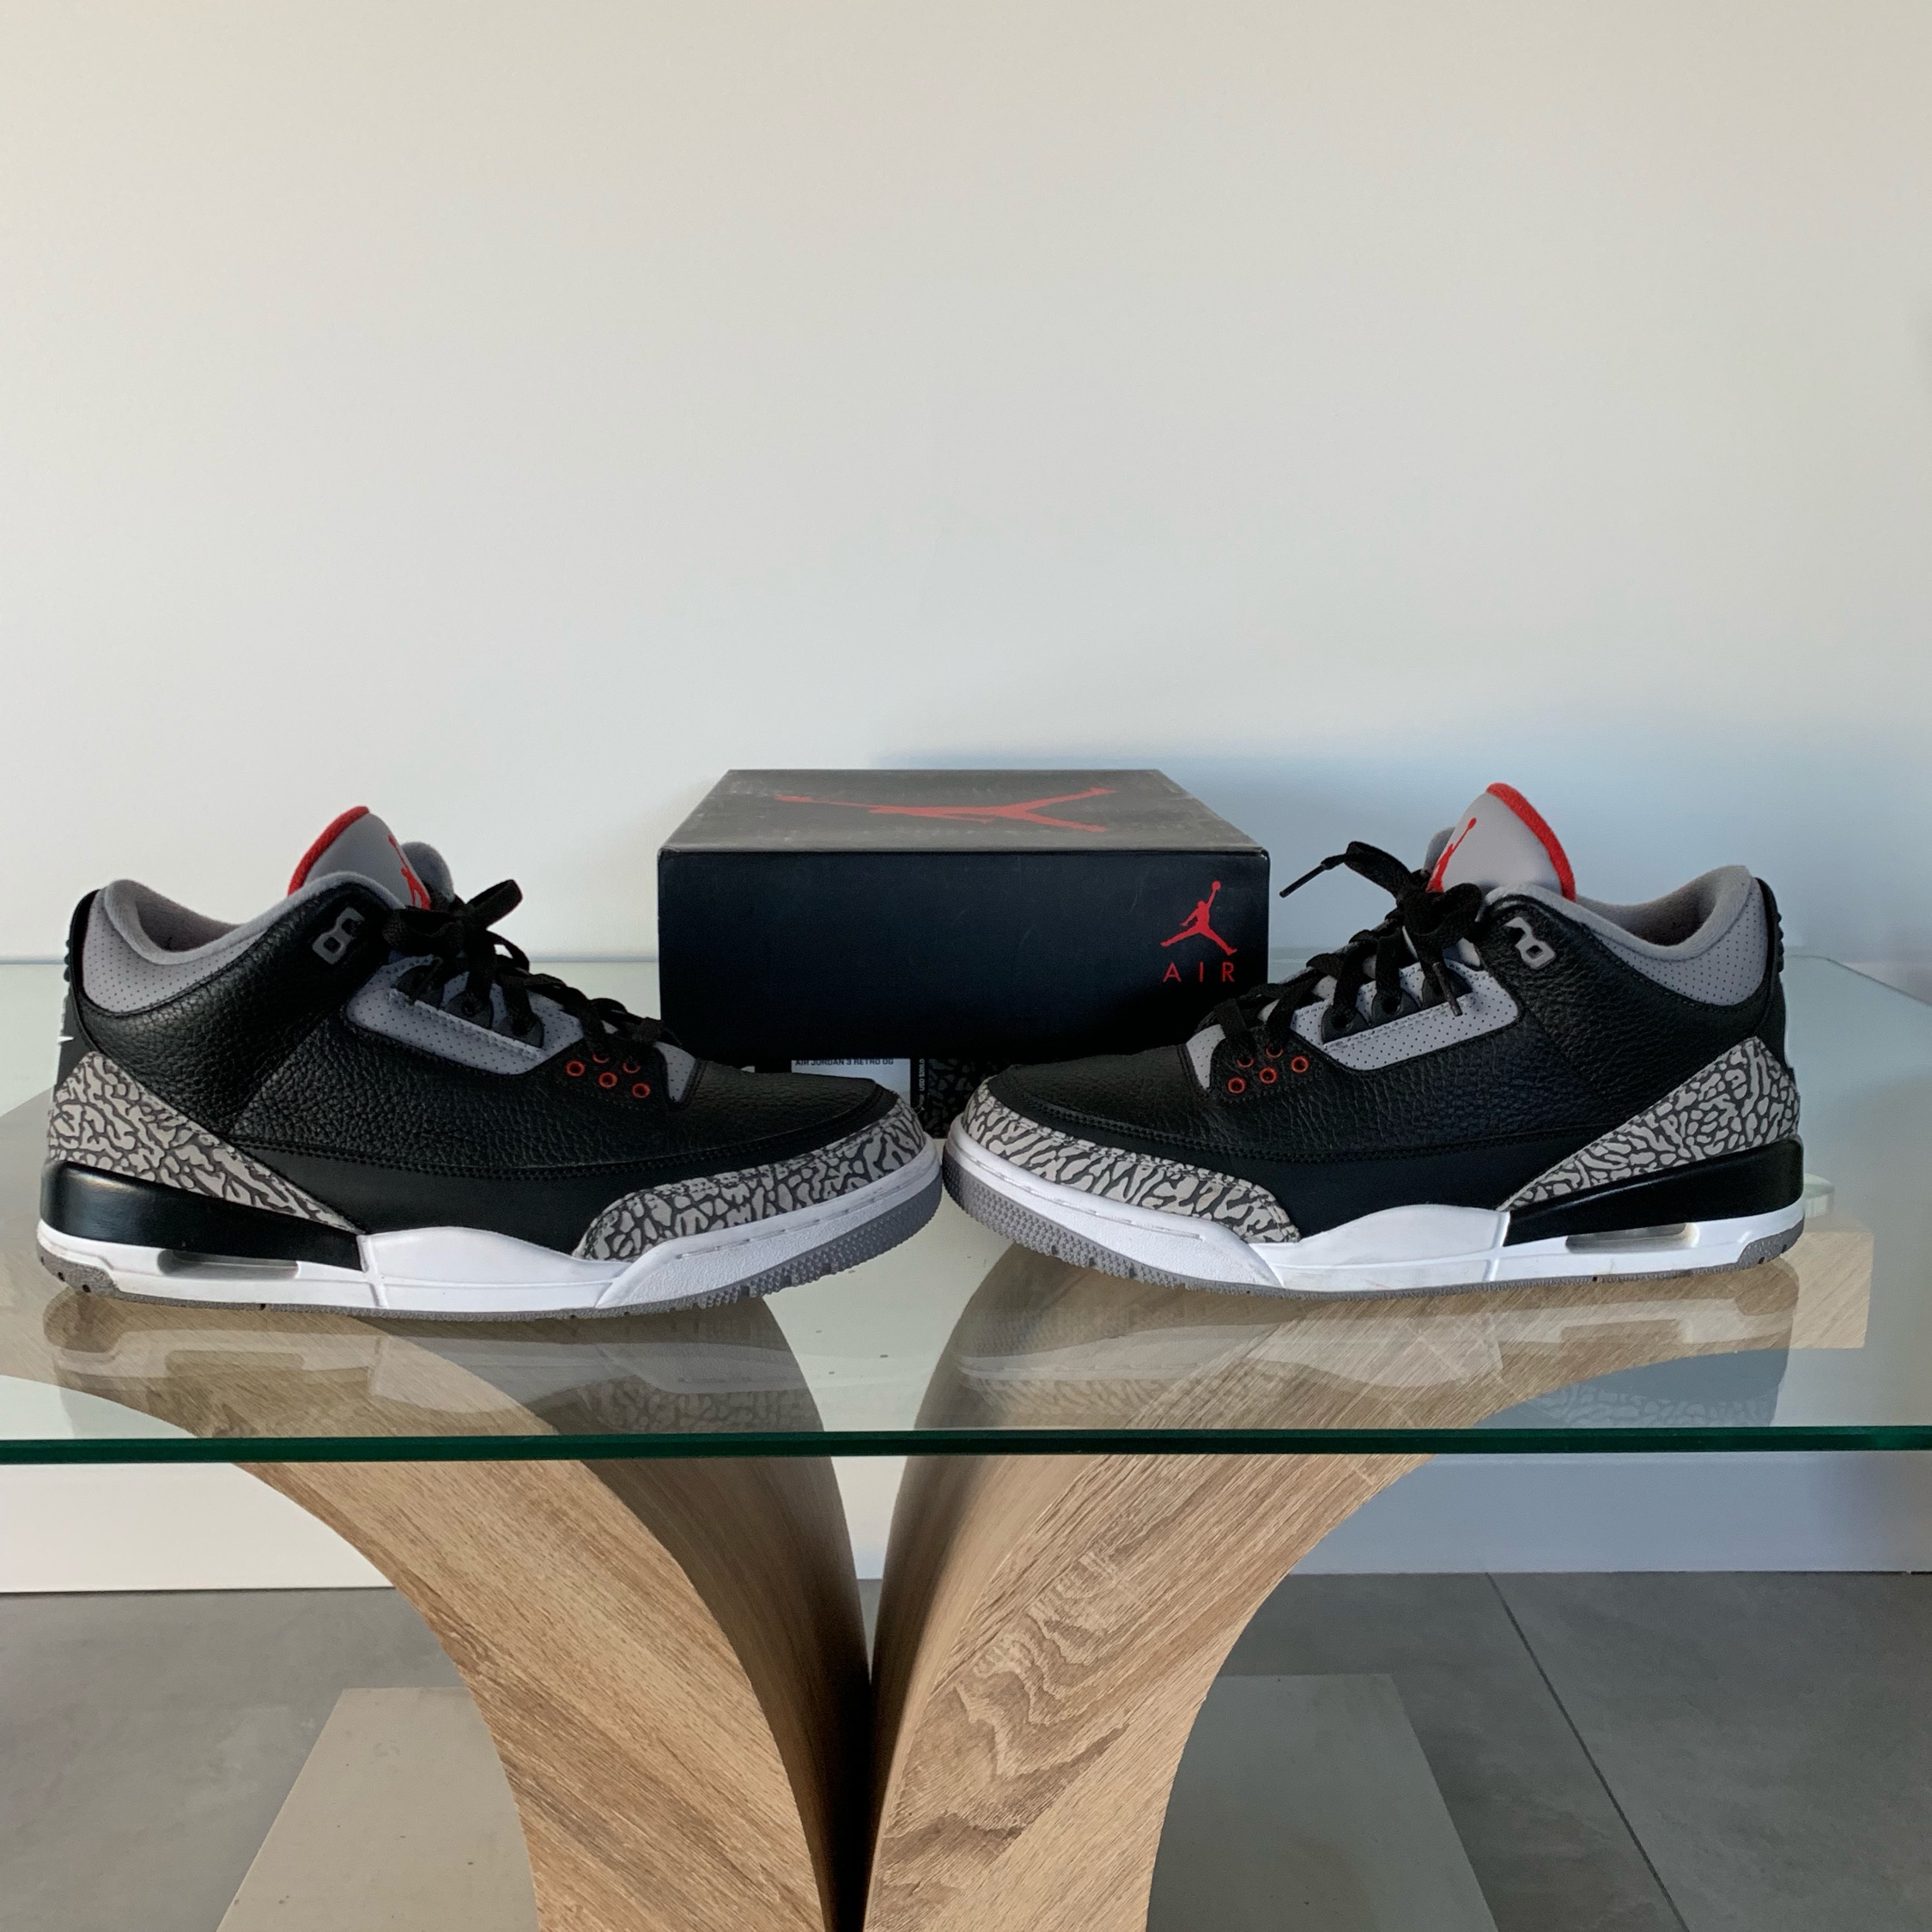 on sale 0e1a9 56a4b Jordan 3 Black Cement (Looking For Trades)